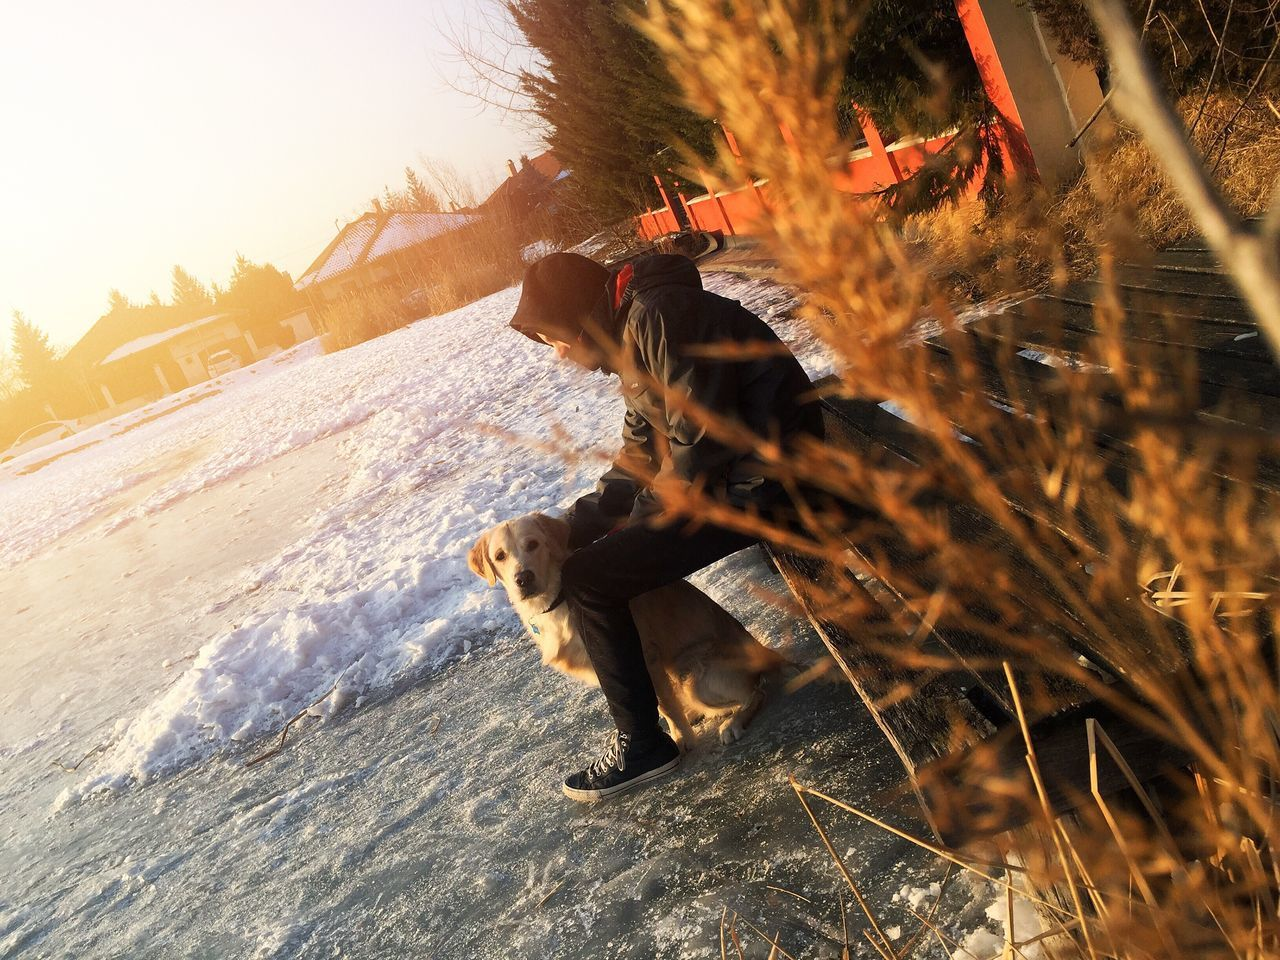 My Goldenretriever🐶| It was an incredible afternoon with my dog and my brother! Pets Goldenretriever Winter Brother Golden Hour Lake Ice Sunset